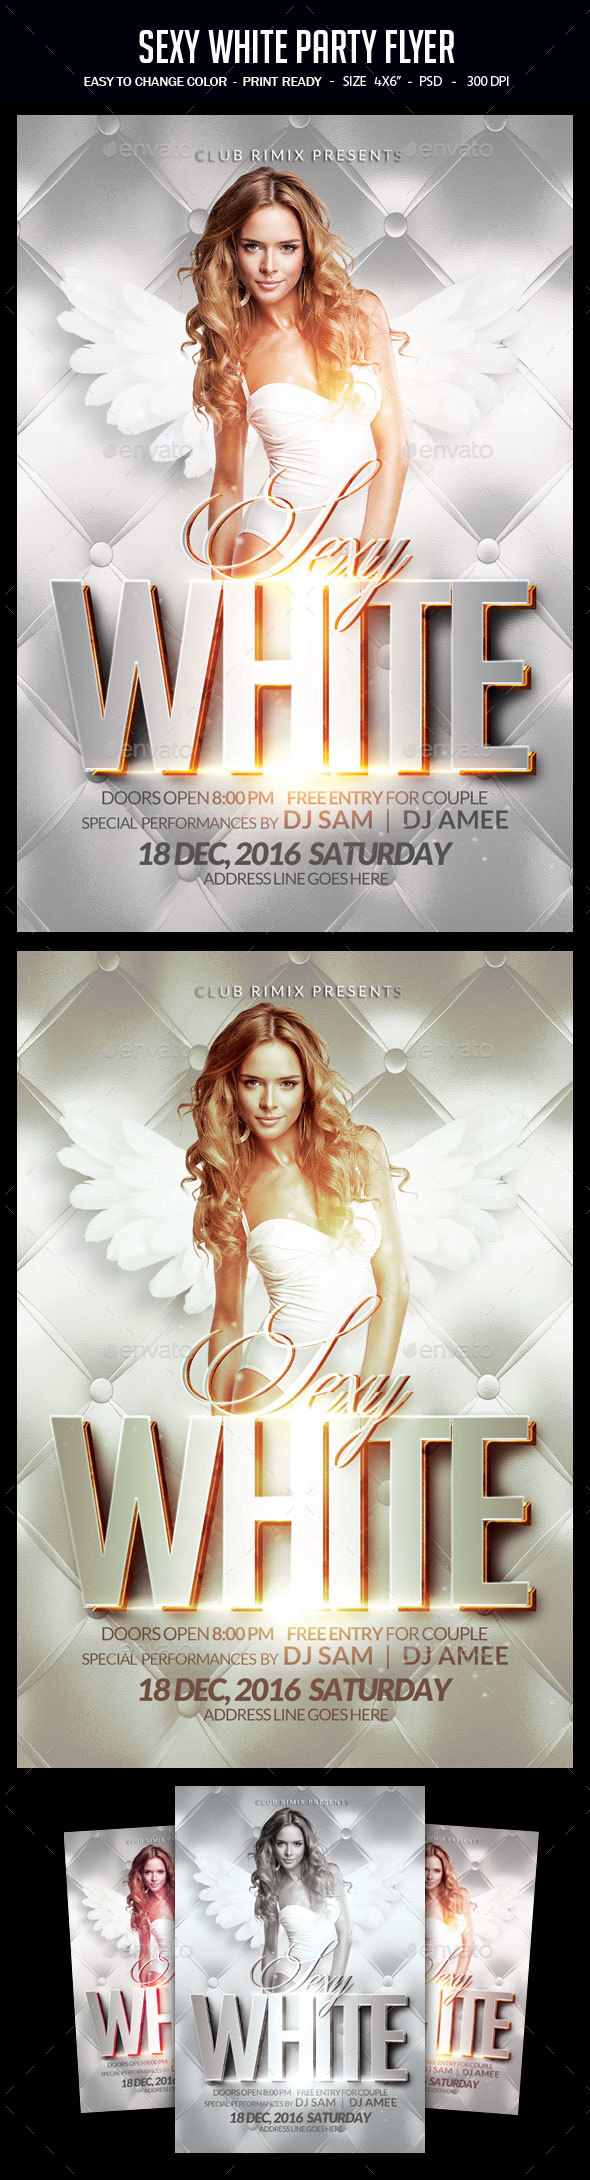 Sexy White Party Flyer